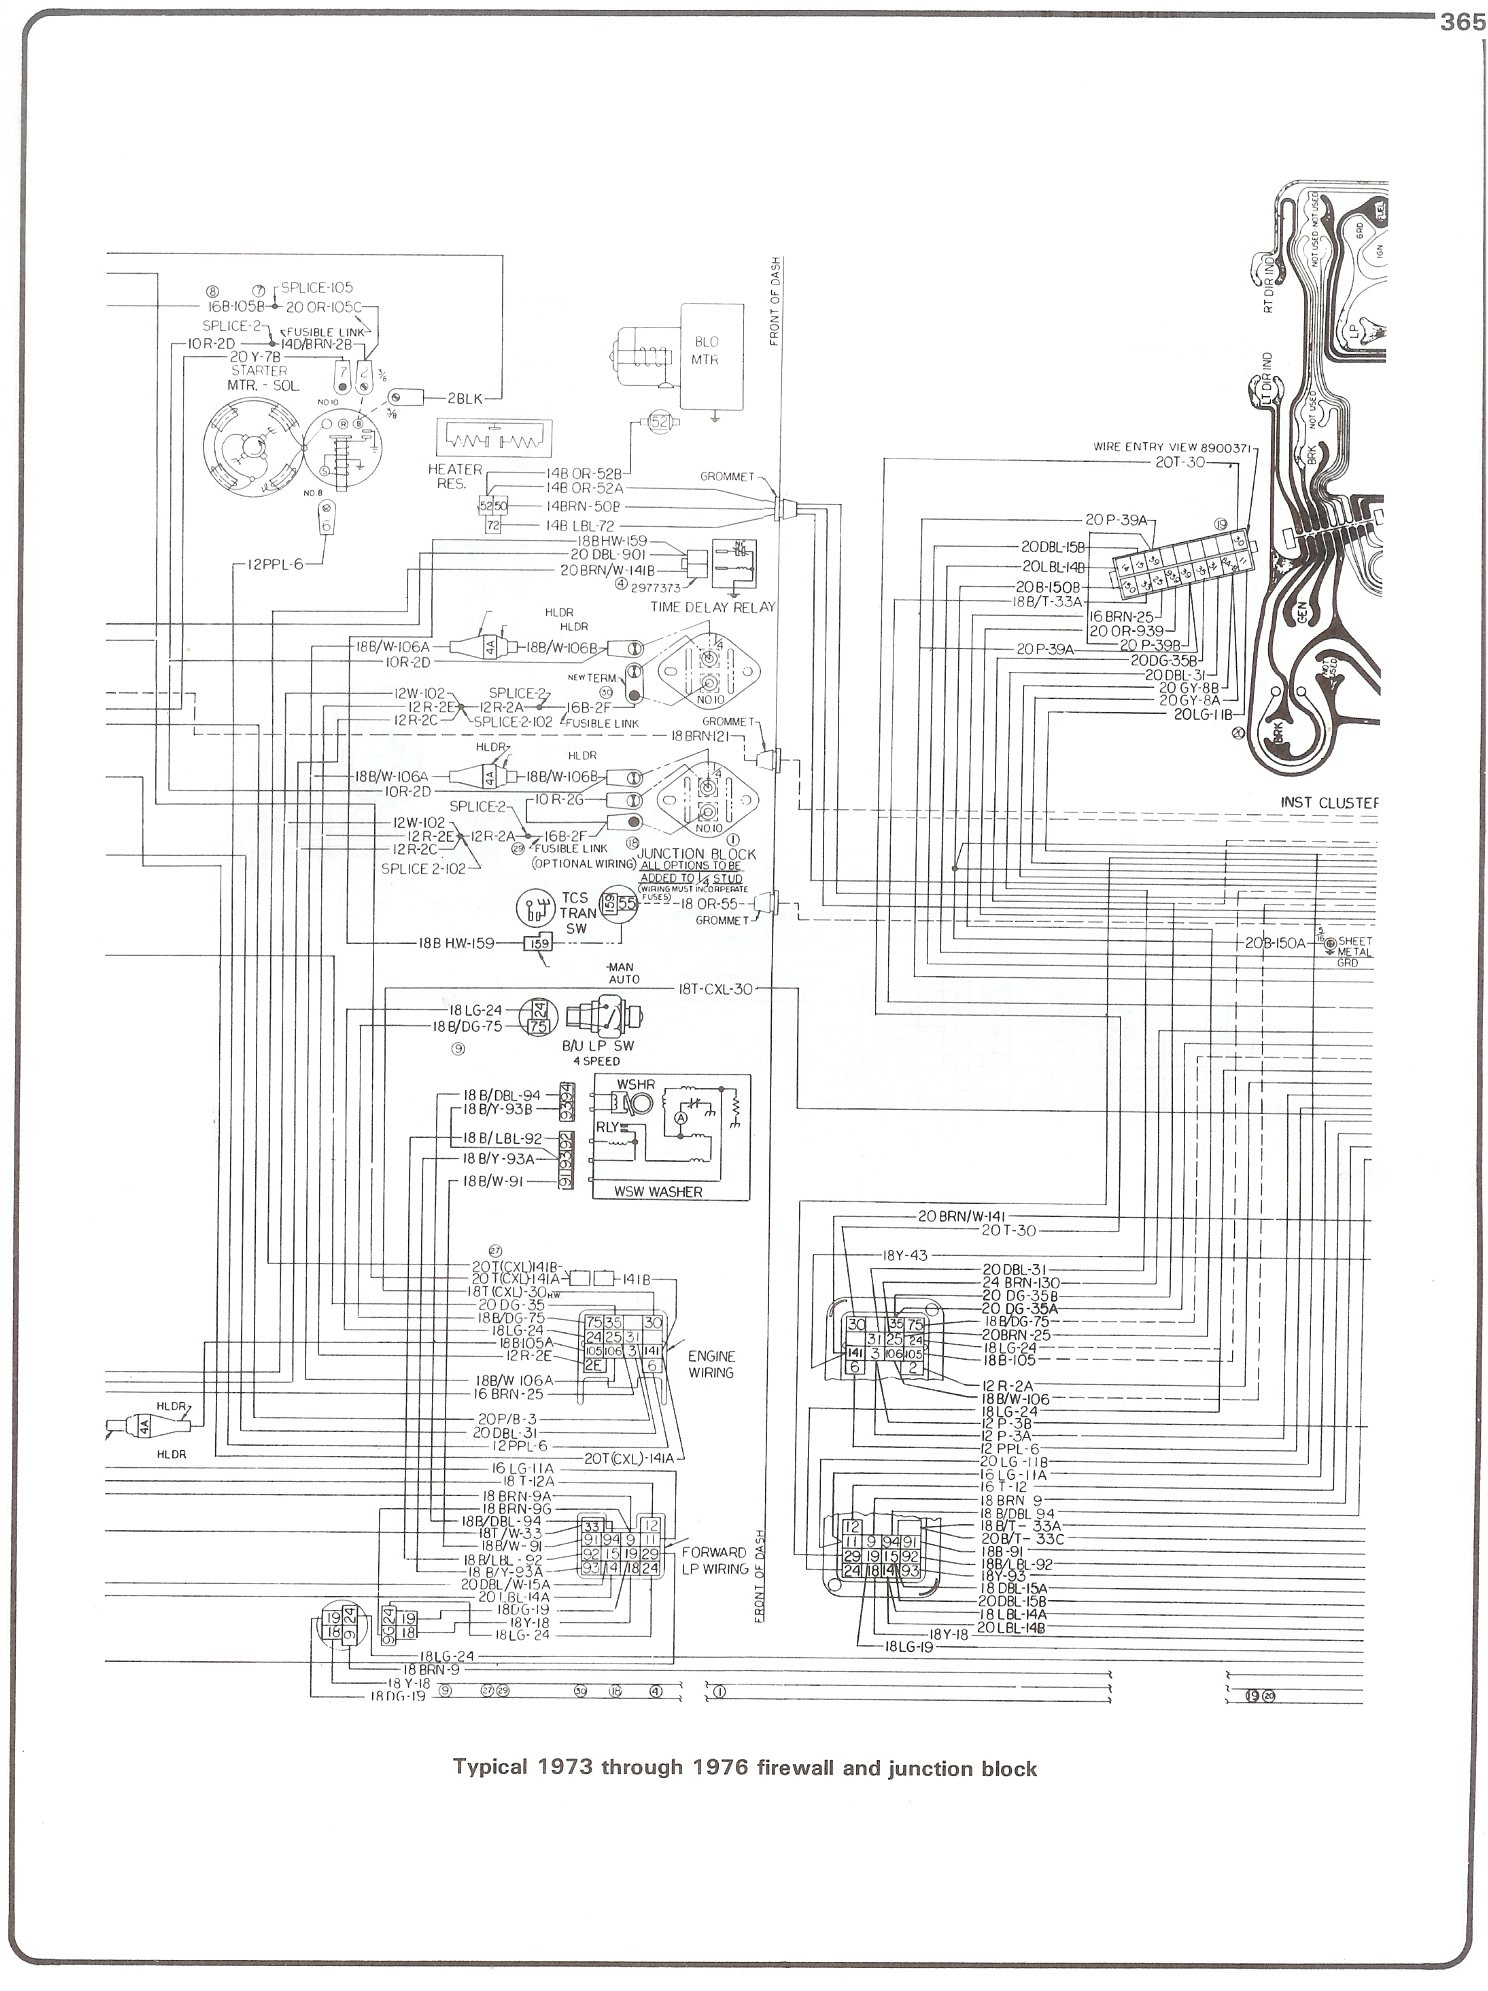 73 76_firewall_junct complete 73 87 wiring diagrams 1978 Chevy C10 Wiring-Diagram at panicattacktreatment.co